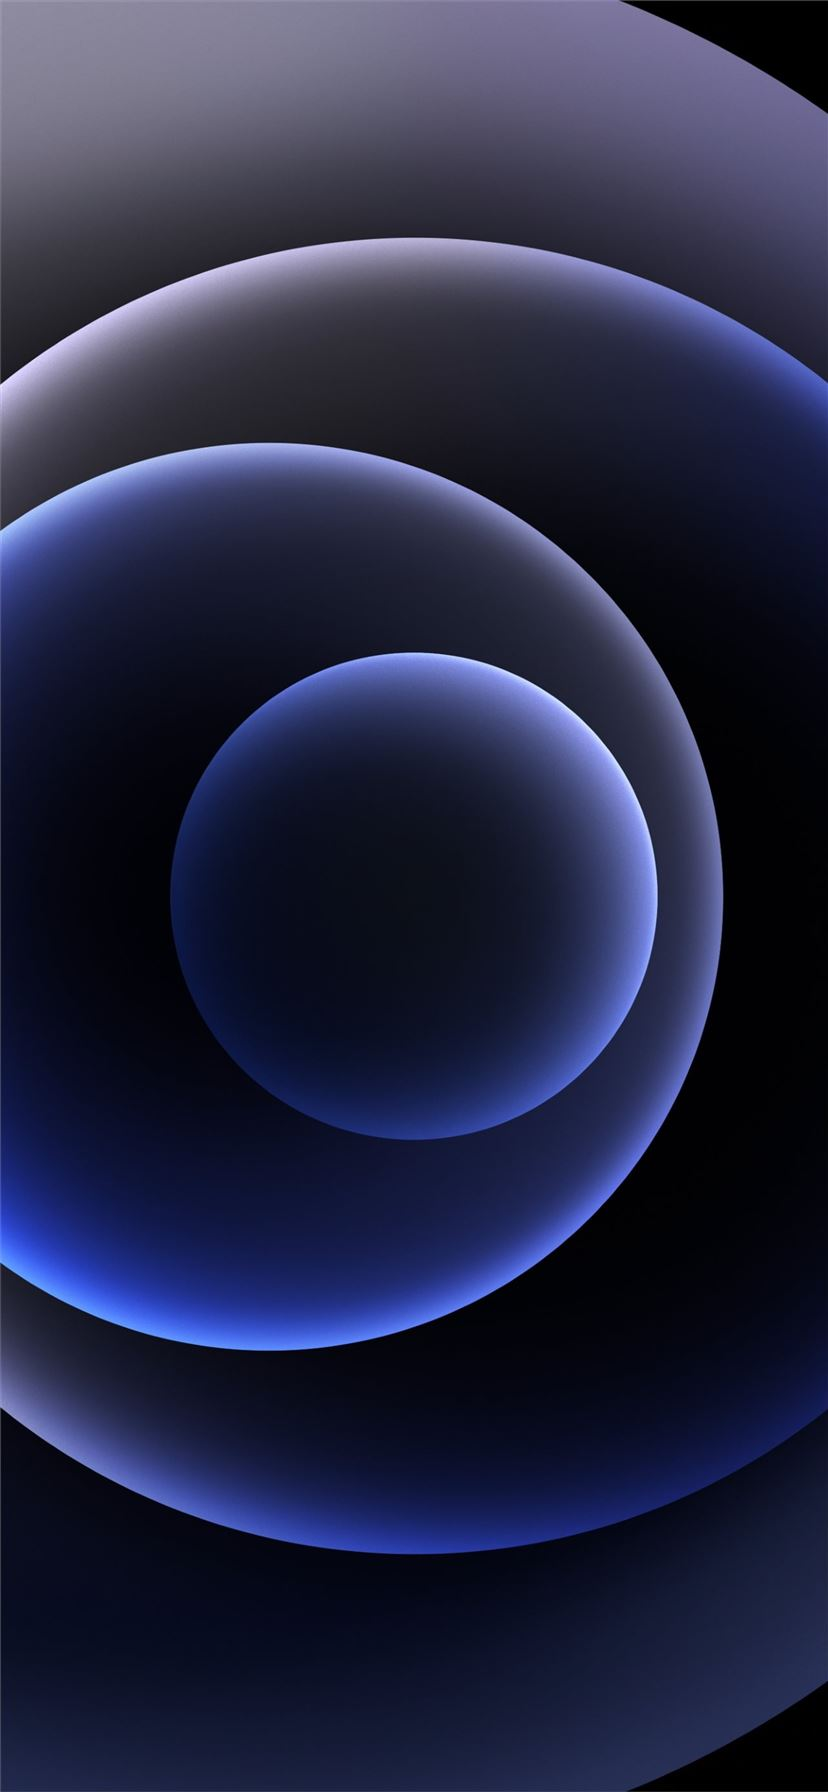 Colorful iPhone 12 Stock wallpaper Orbs Black Dark iPhone 11 wallpaper